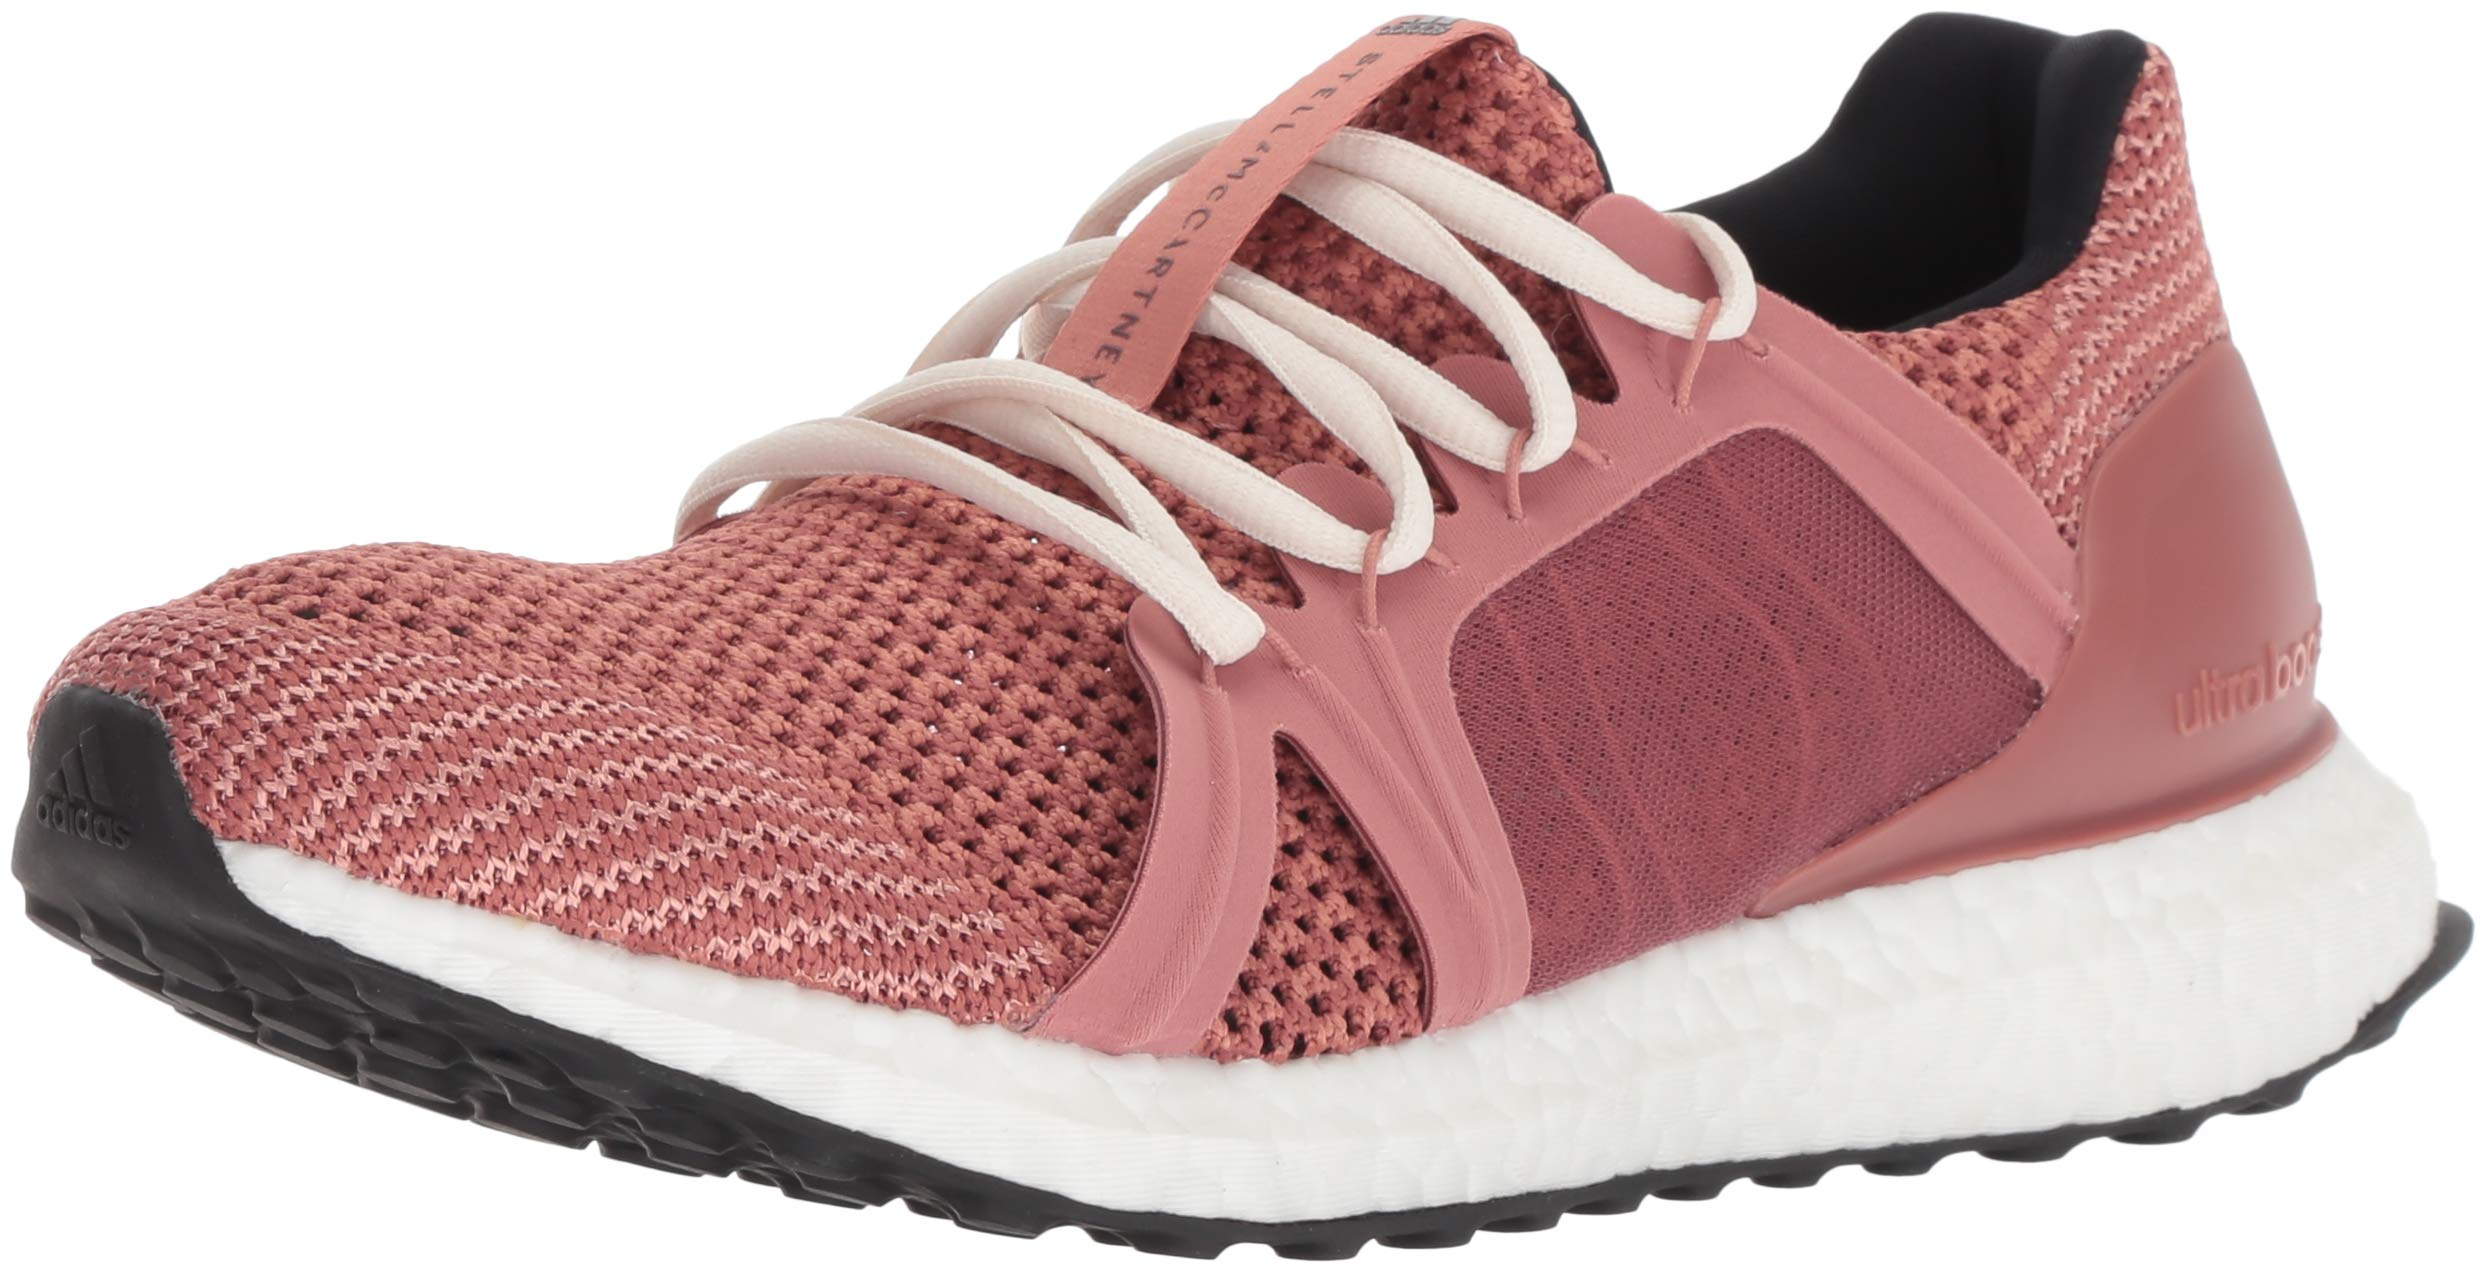 adidas adidas Women's Ultraboost, clear orangeorchid tinttrue pink, 8 M US from Amazon   People